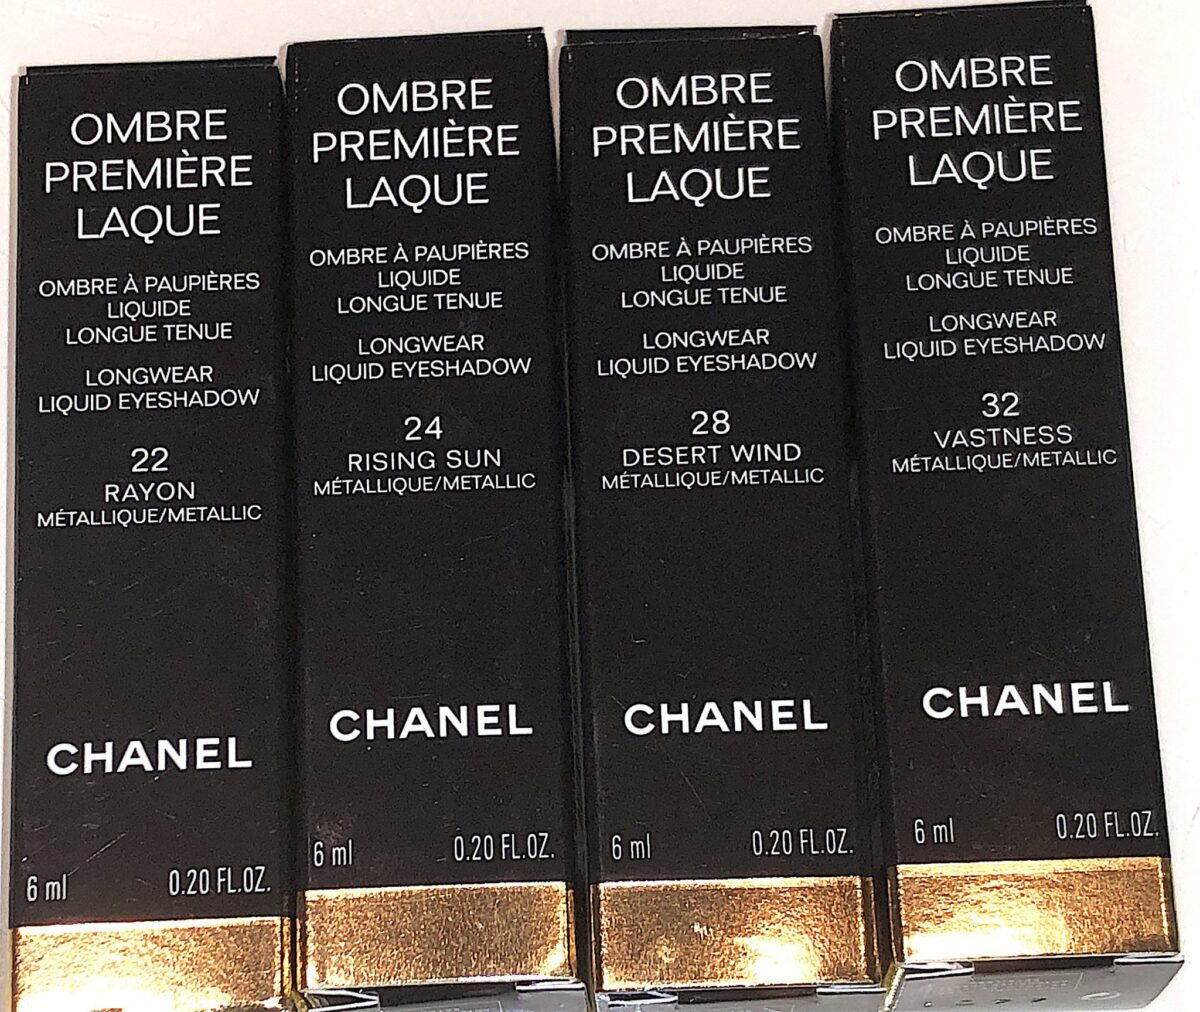 THE CHANEL LONGWEAR LIQUID EYESHADOW OUTER PACKAGING